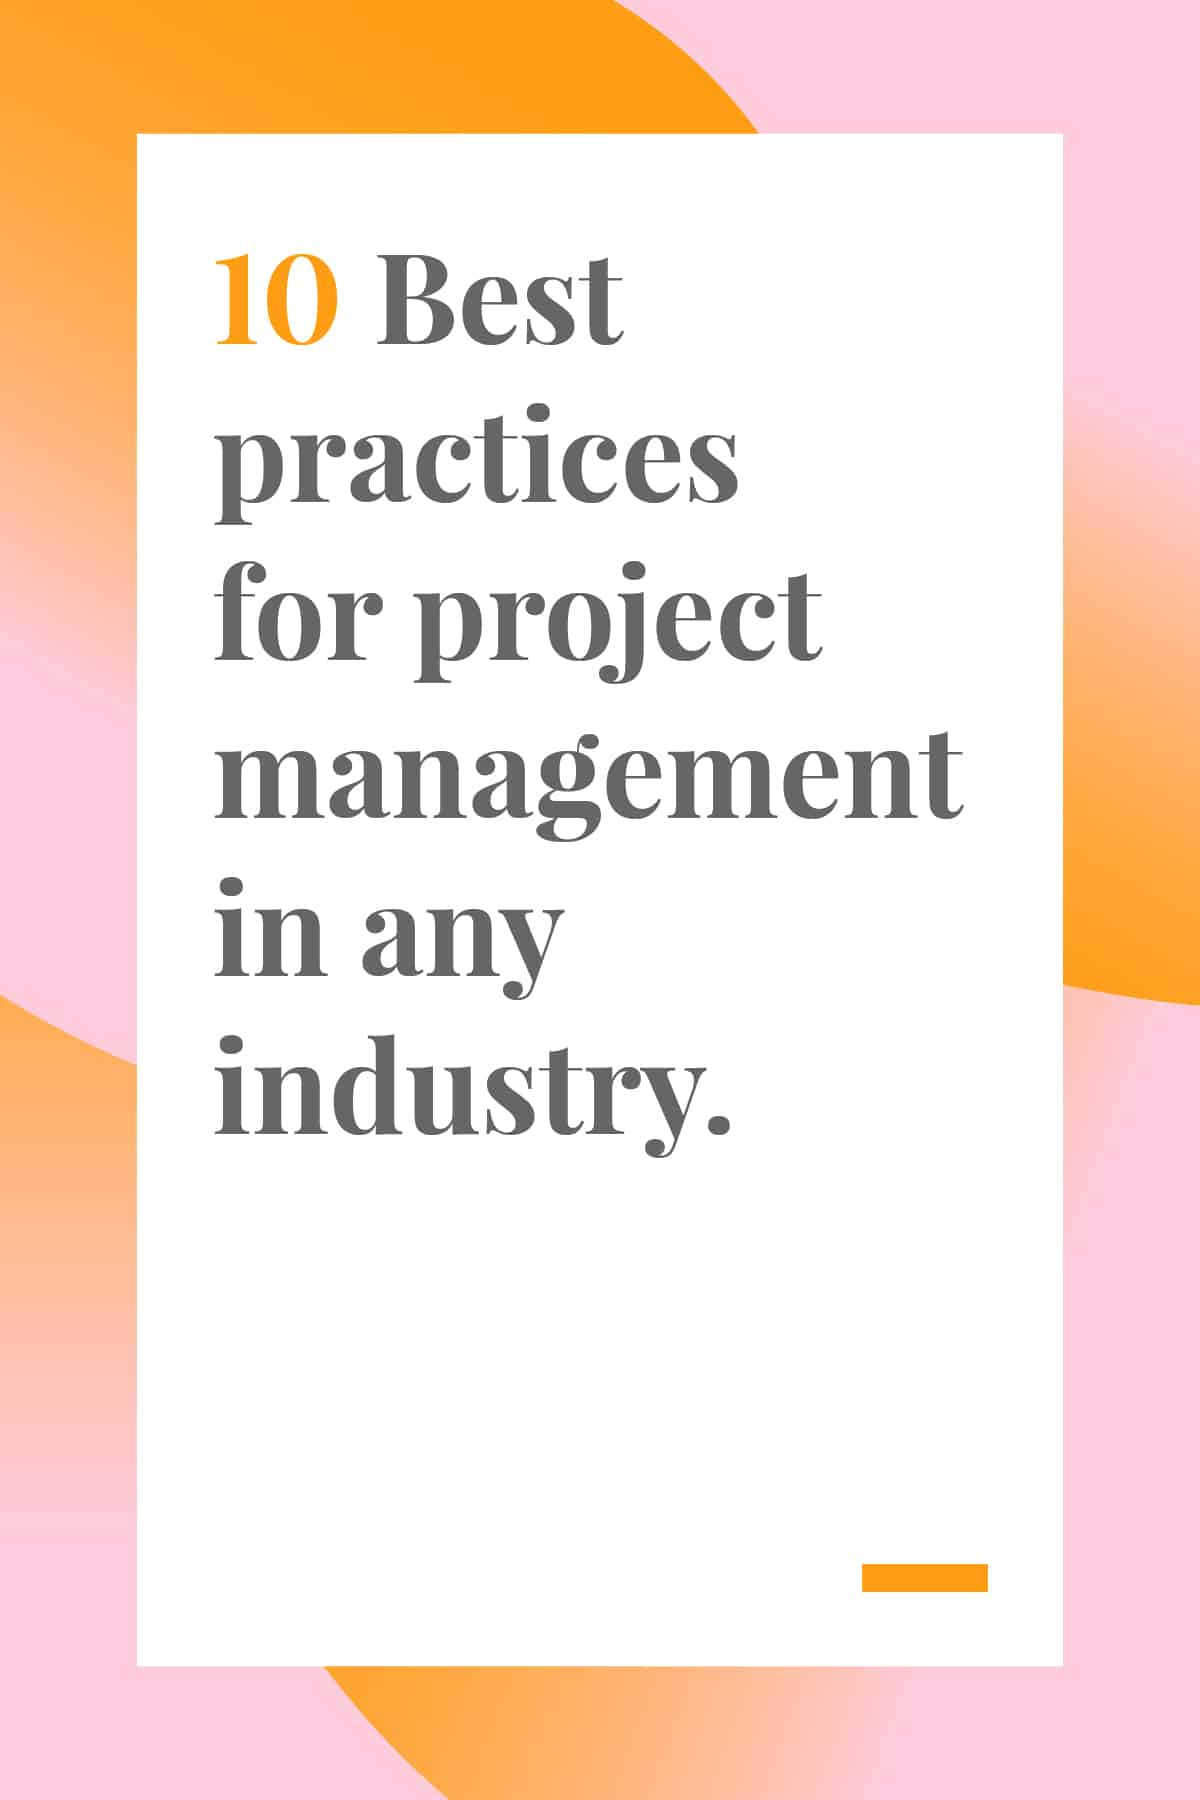 These 10 best practices for project management will help you streamline your process and stick to your budget and deadline. #projectmanagementtips